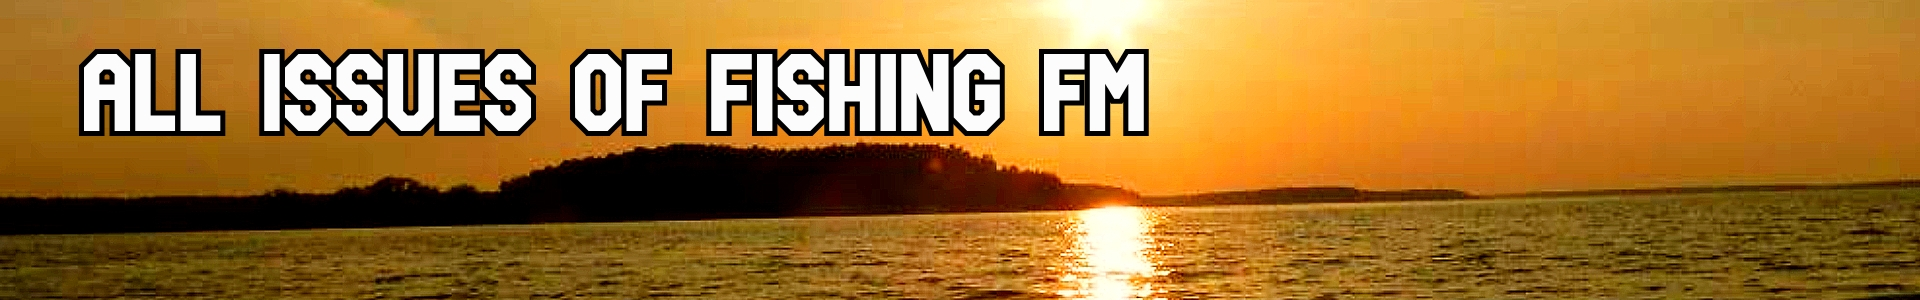 All-issues-of-Fishing-FM